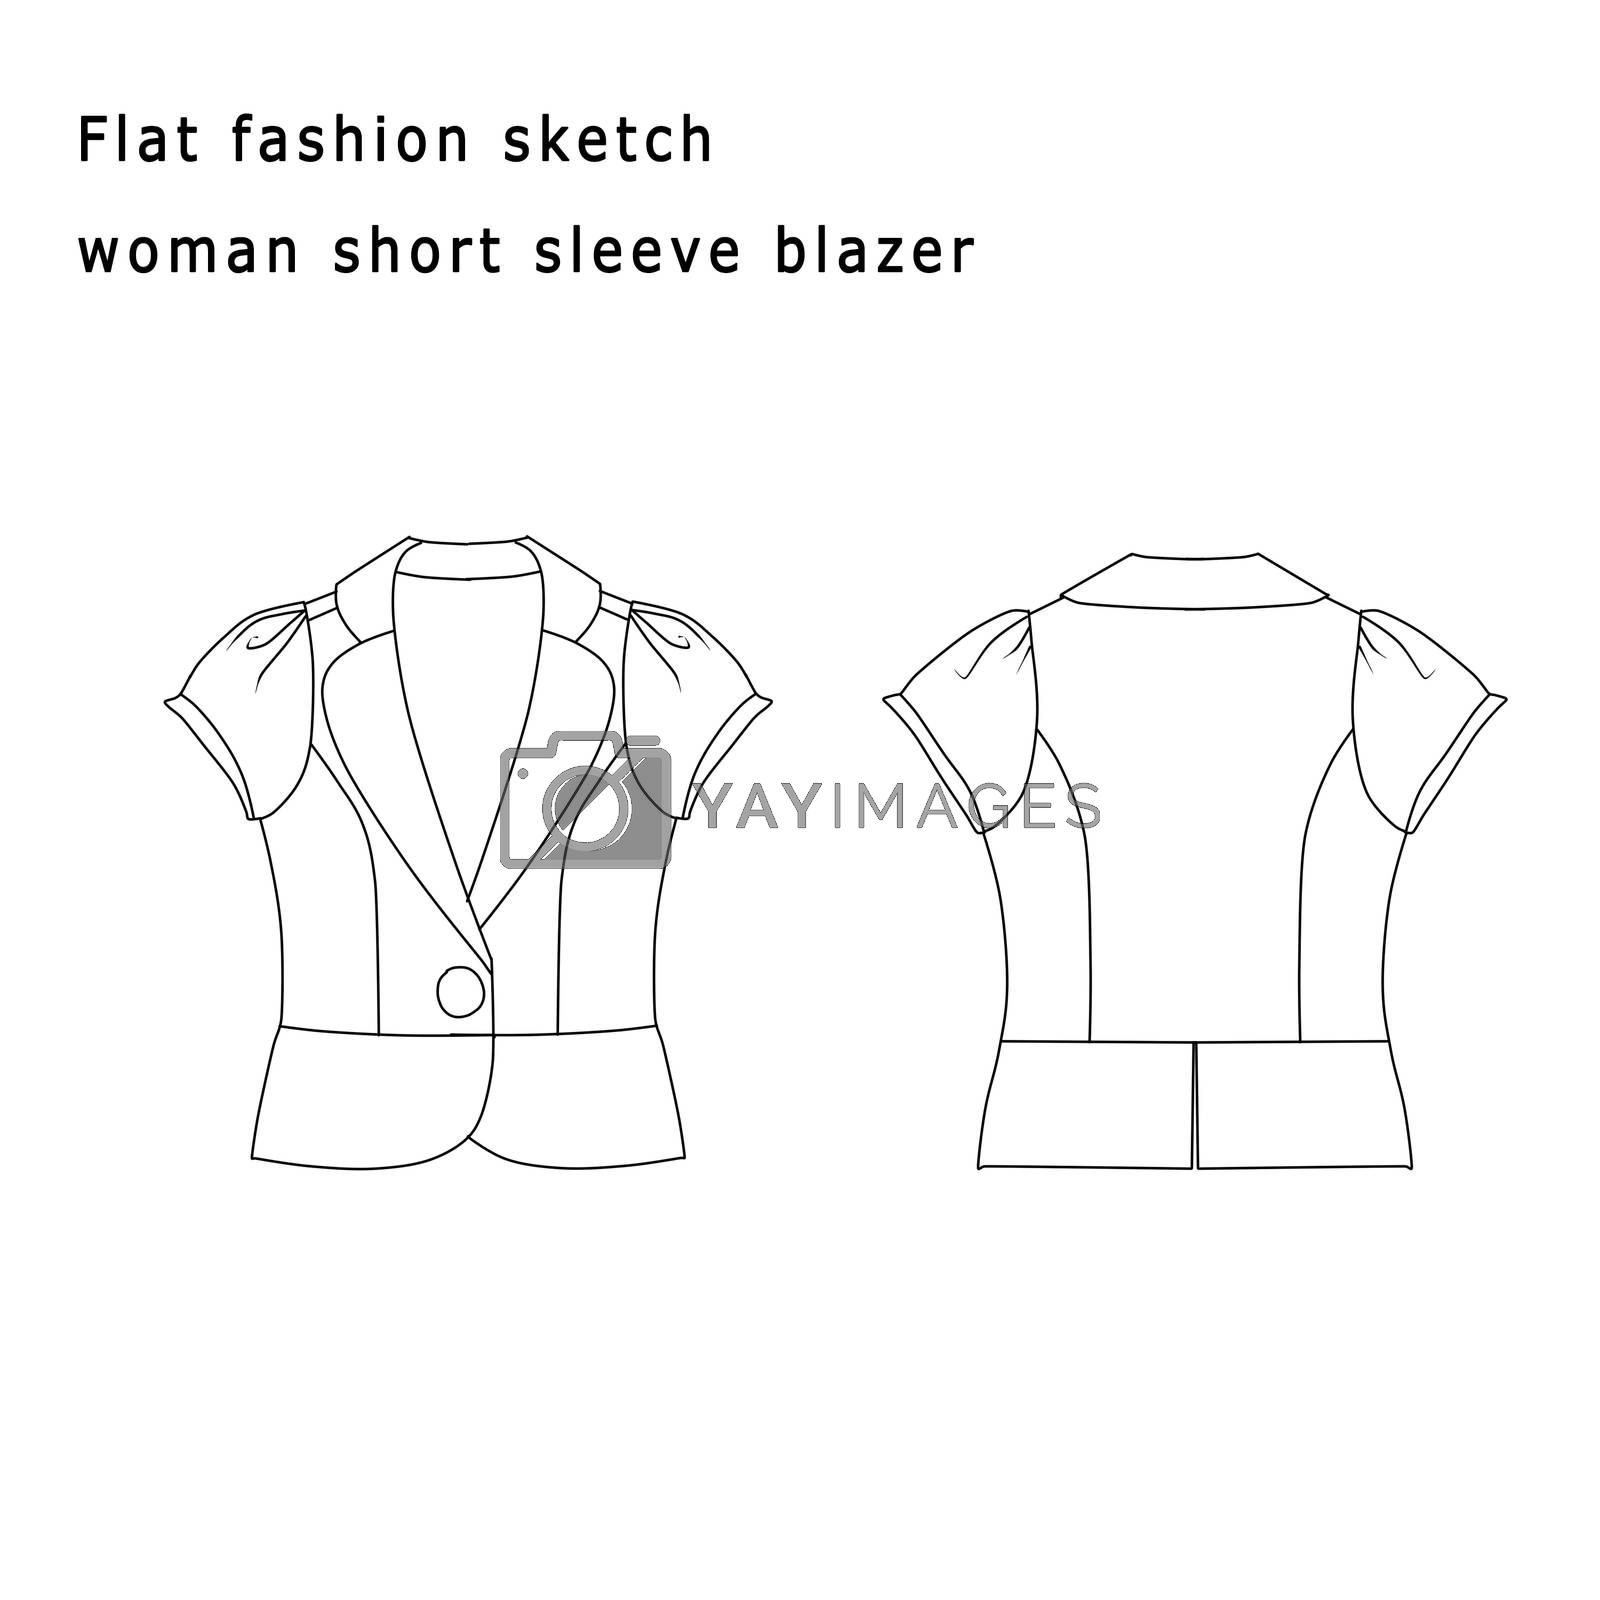 Fashion Illustration - Fashion Flat template - Woman short Blazer by GGillustrations